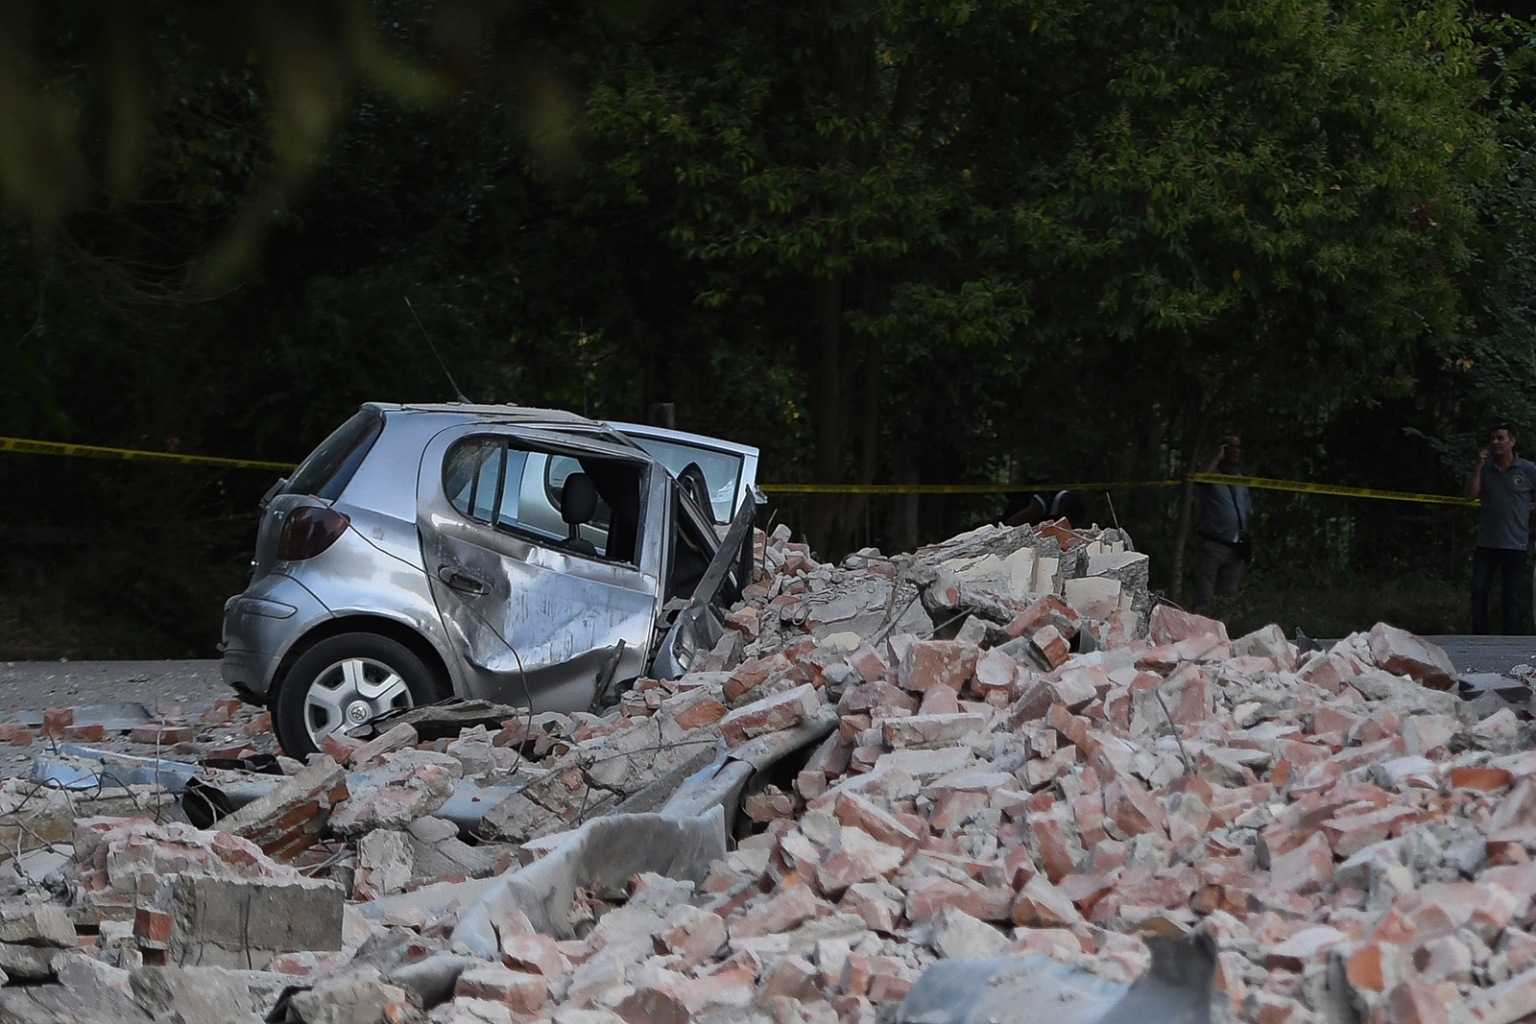 A car is crushed by the partially collapsed roof of a building after two earthquakes over 5.0 magnitude struck the Adriatic coastline of Albania on Sept. 21 GENT SHKULLAKU/AFP/Getty Images